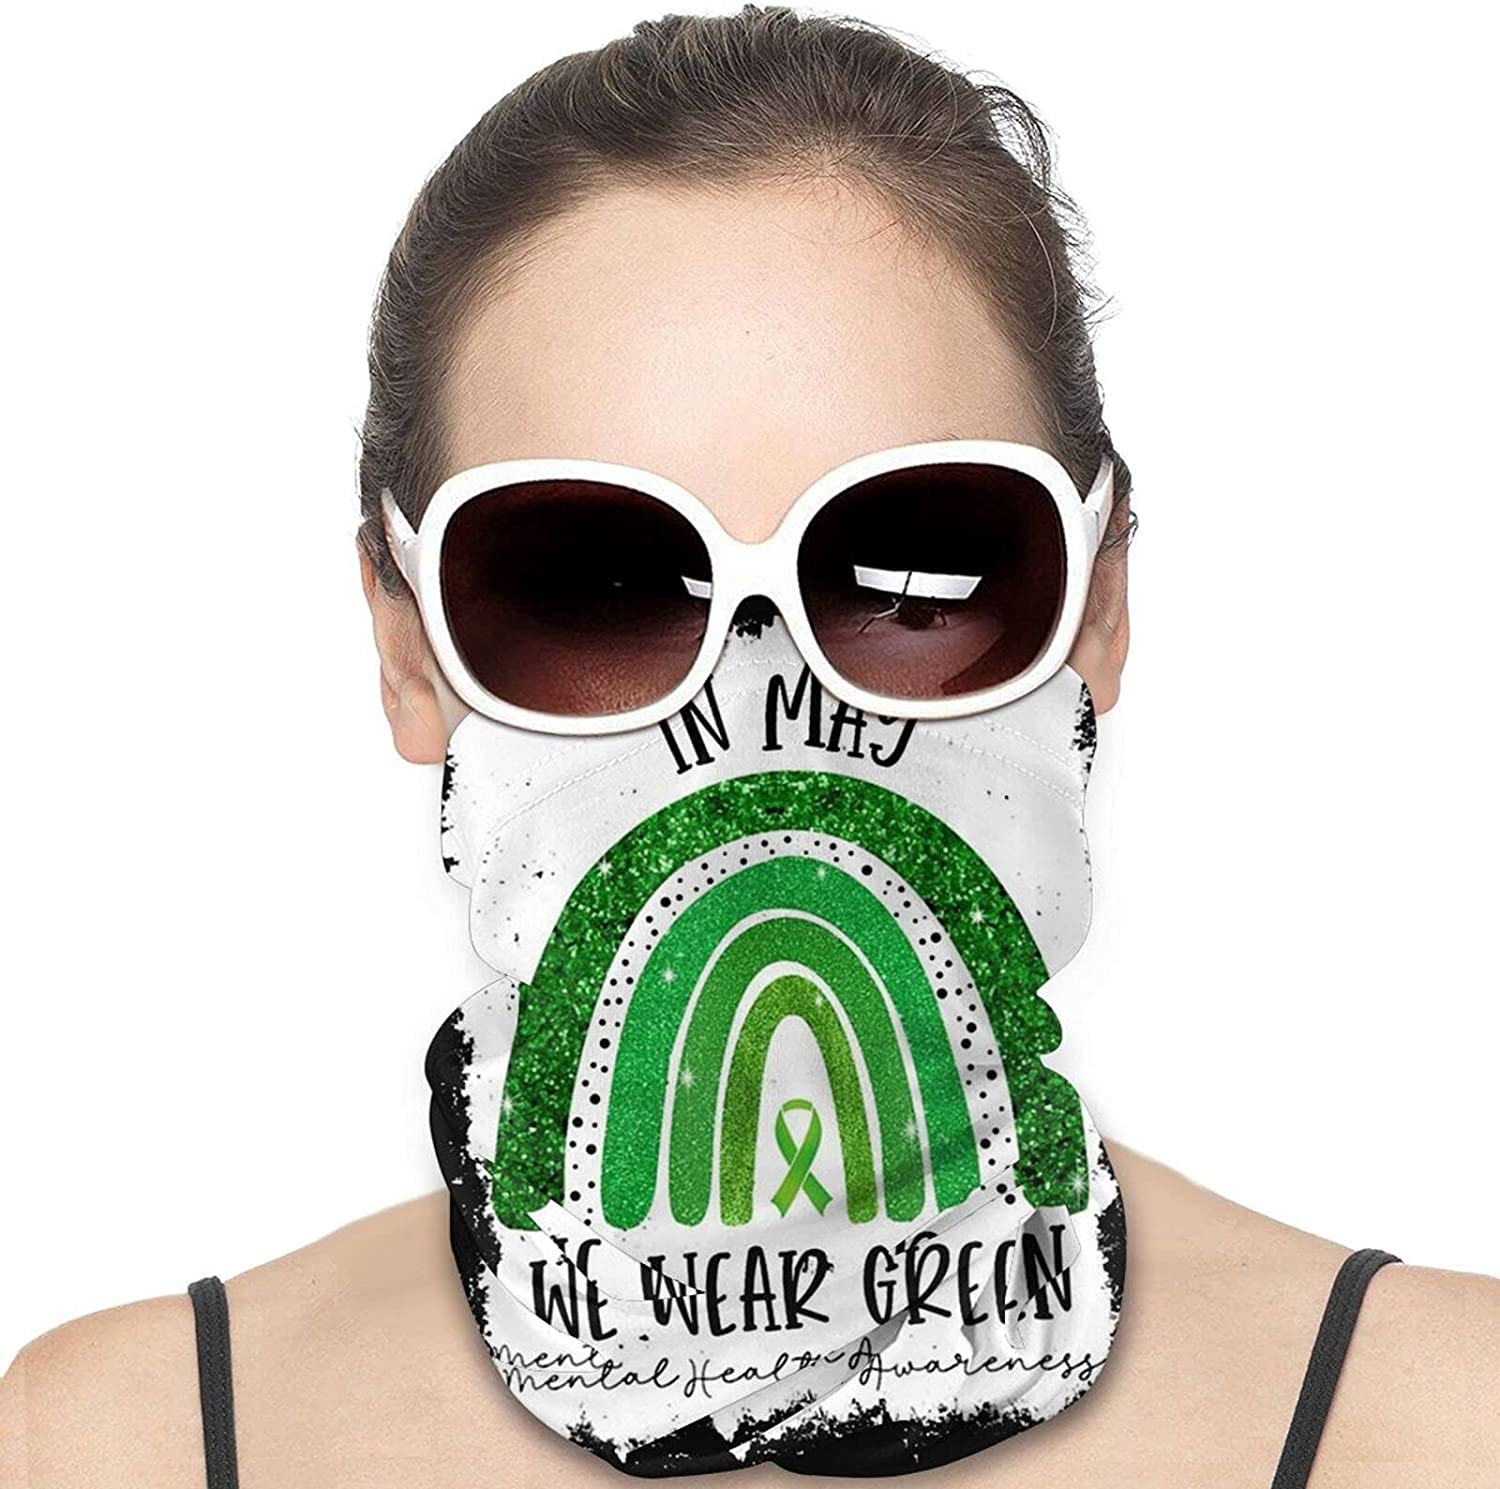 In May We Wear Green Mental Health Awareness Round Neck Gaiter Bandnas Face Cover Uv Protection Prevent bask in Ice Scarf Headbands Perfect for Motorcycle Cycling Running Festival Raves Outdoors